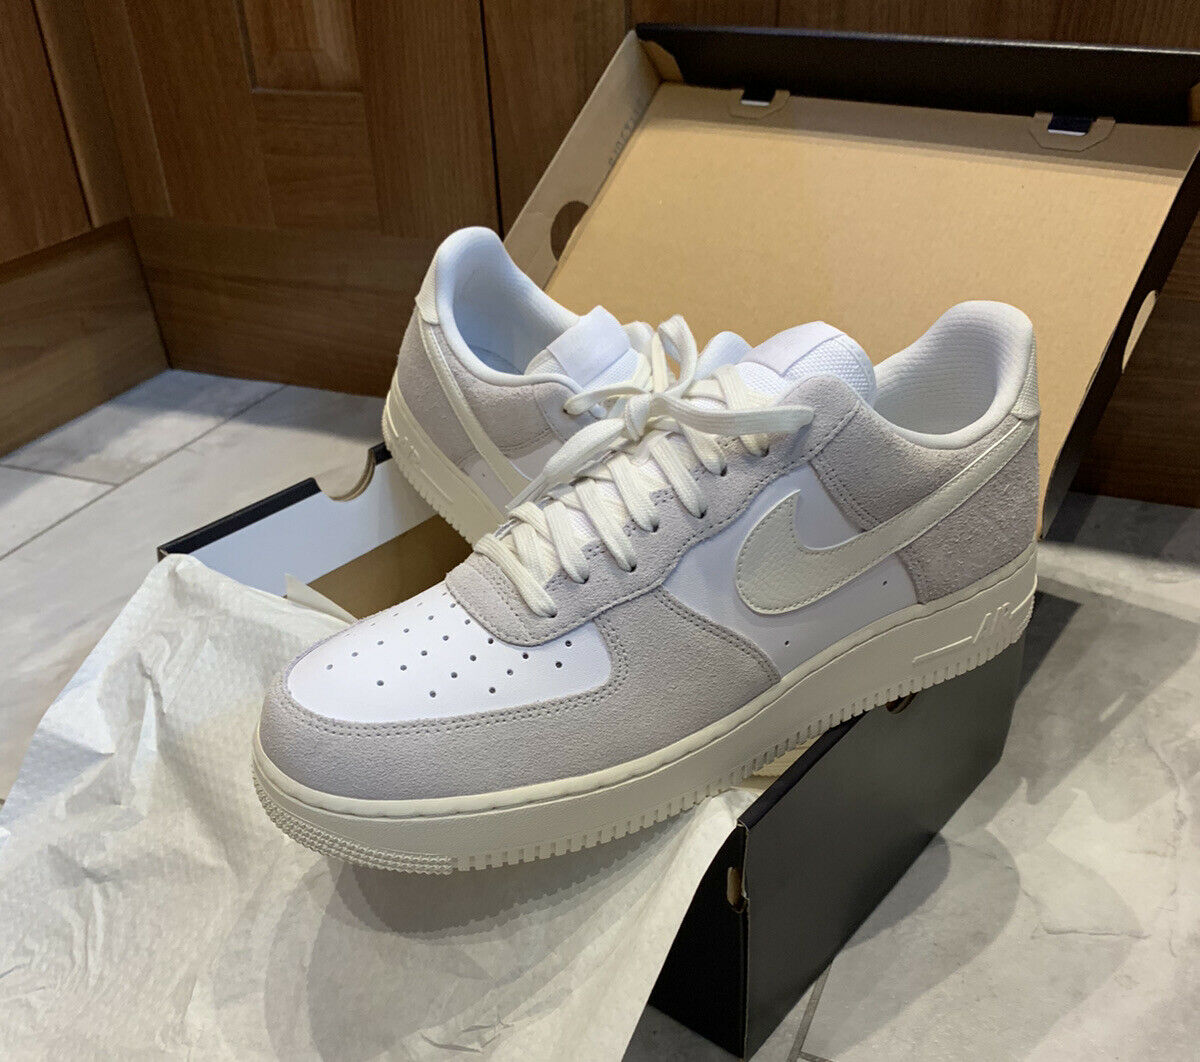 Nike Air Force 1 Low Sail Platinum Tint